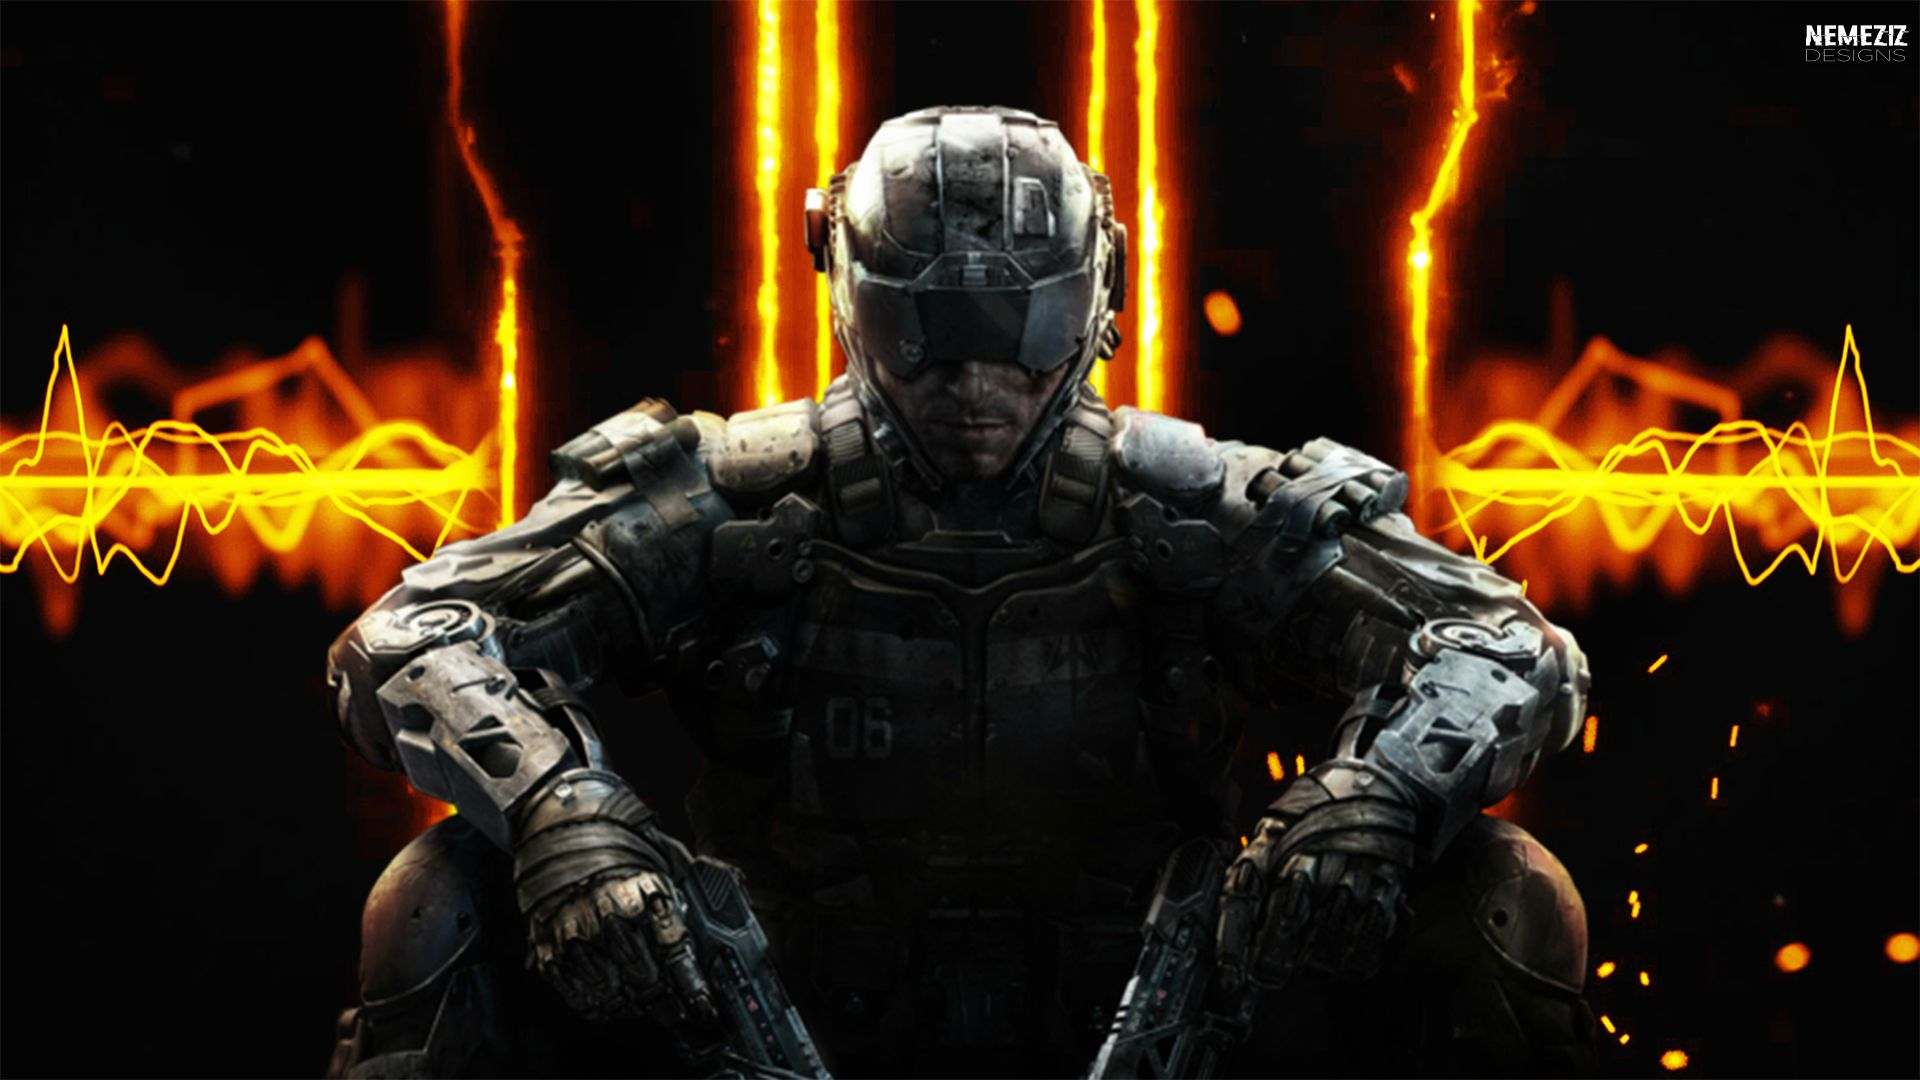 Black Ops 3 Hd Wallpapers 48 Desktop Images Of Black Ops 3 Hd Call Of Duty Black Ops 3 Call Of Duty Black Call Of Duty Black Ops Iii